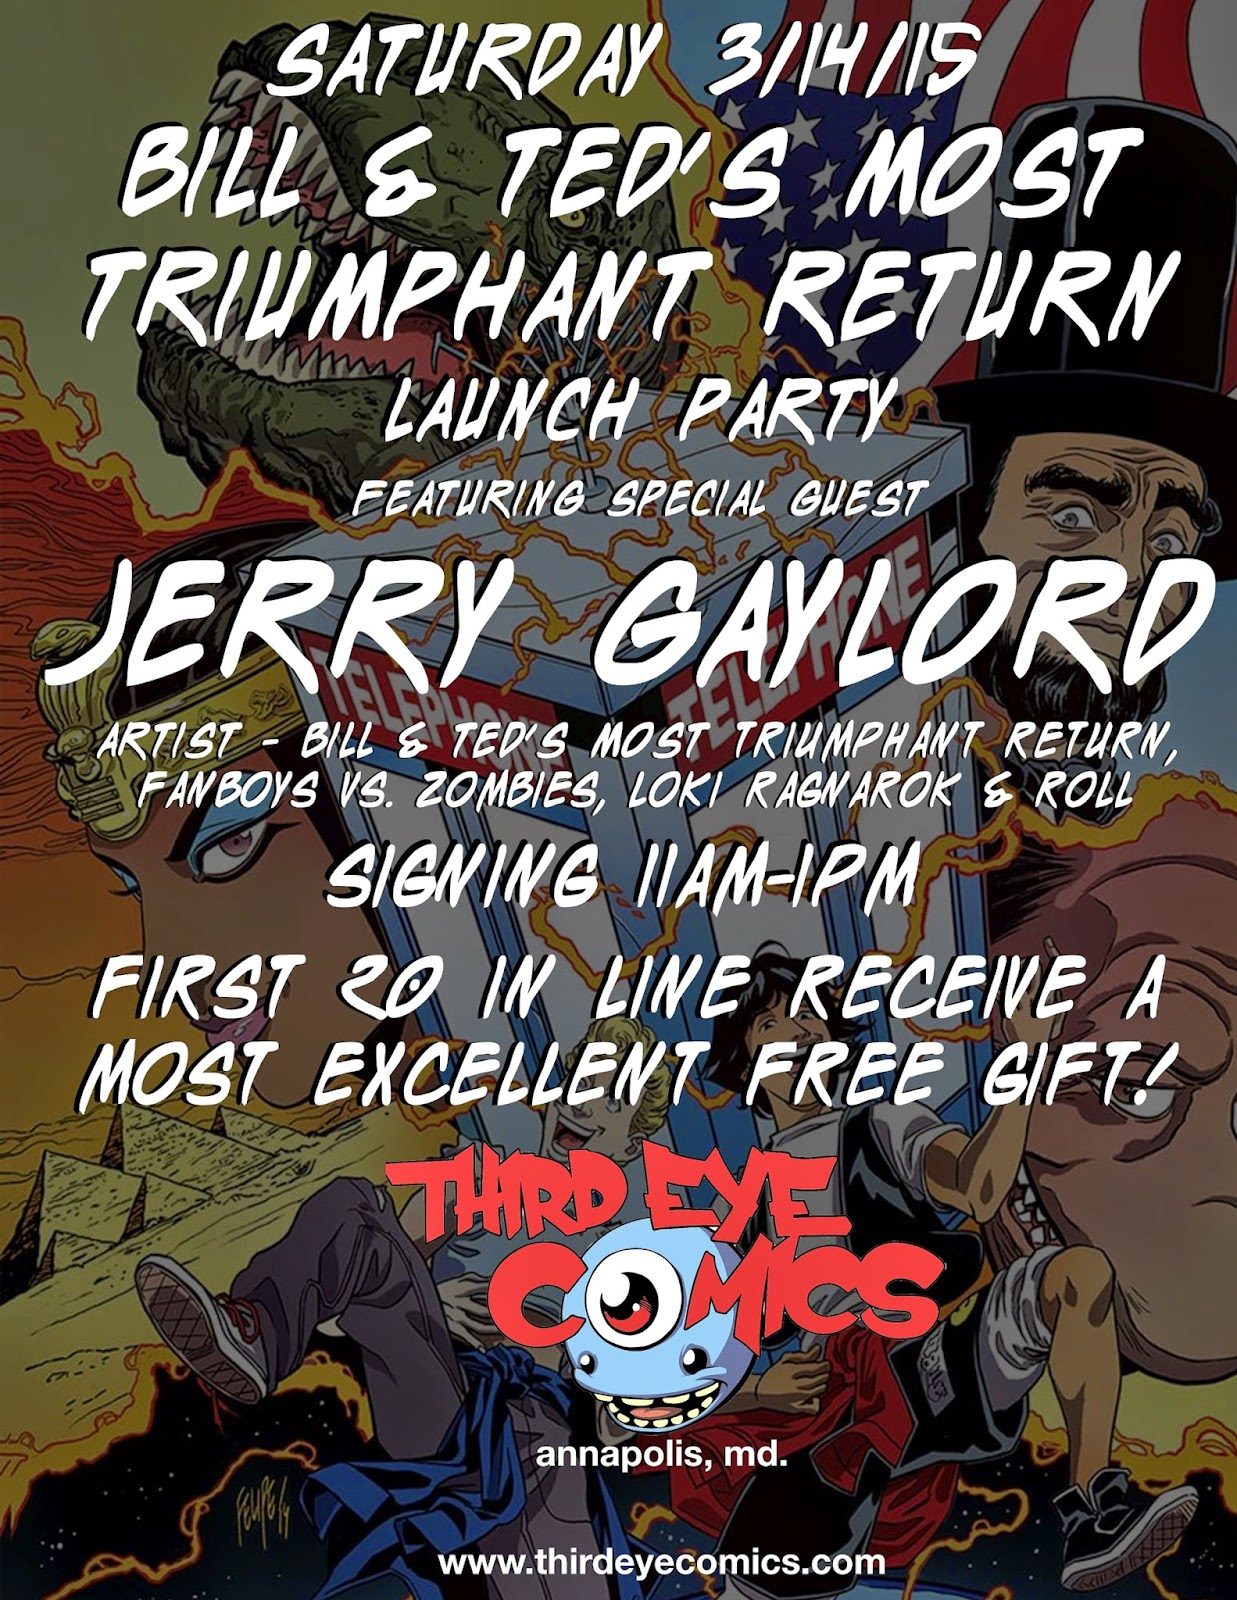 http://www.thirdeyecomics.com/sat-31415-bill-teds-most-triumphant-return-1-launch-party-w-artist-jerry-gaylord/